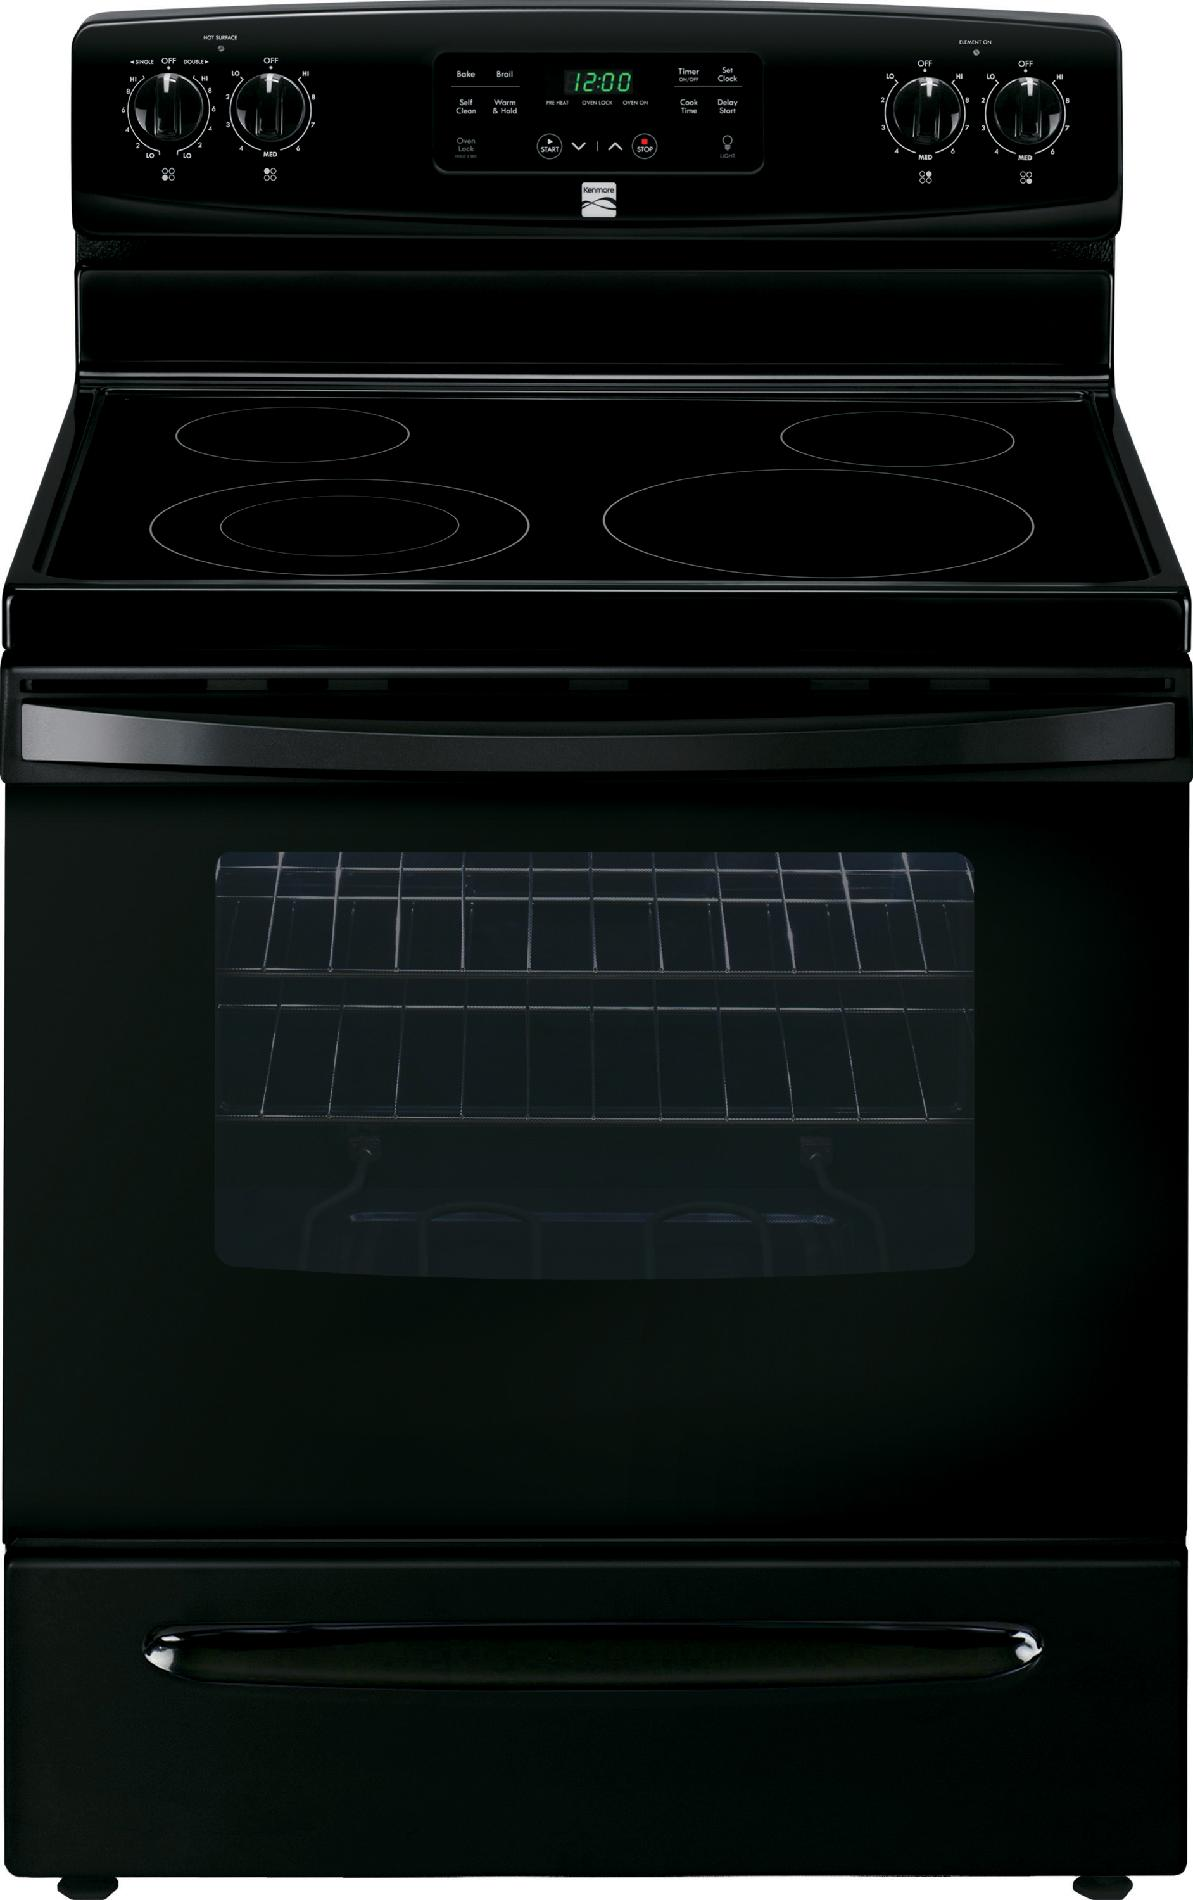 94179-5-3-cu-ft-Self-Cleaning-Electric-Range-Black